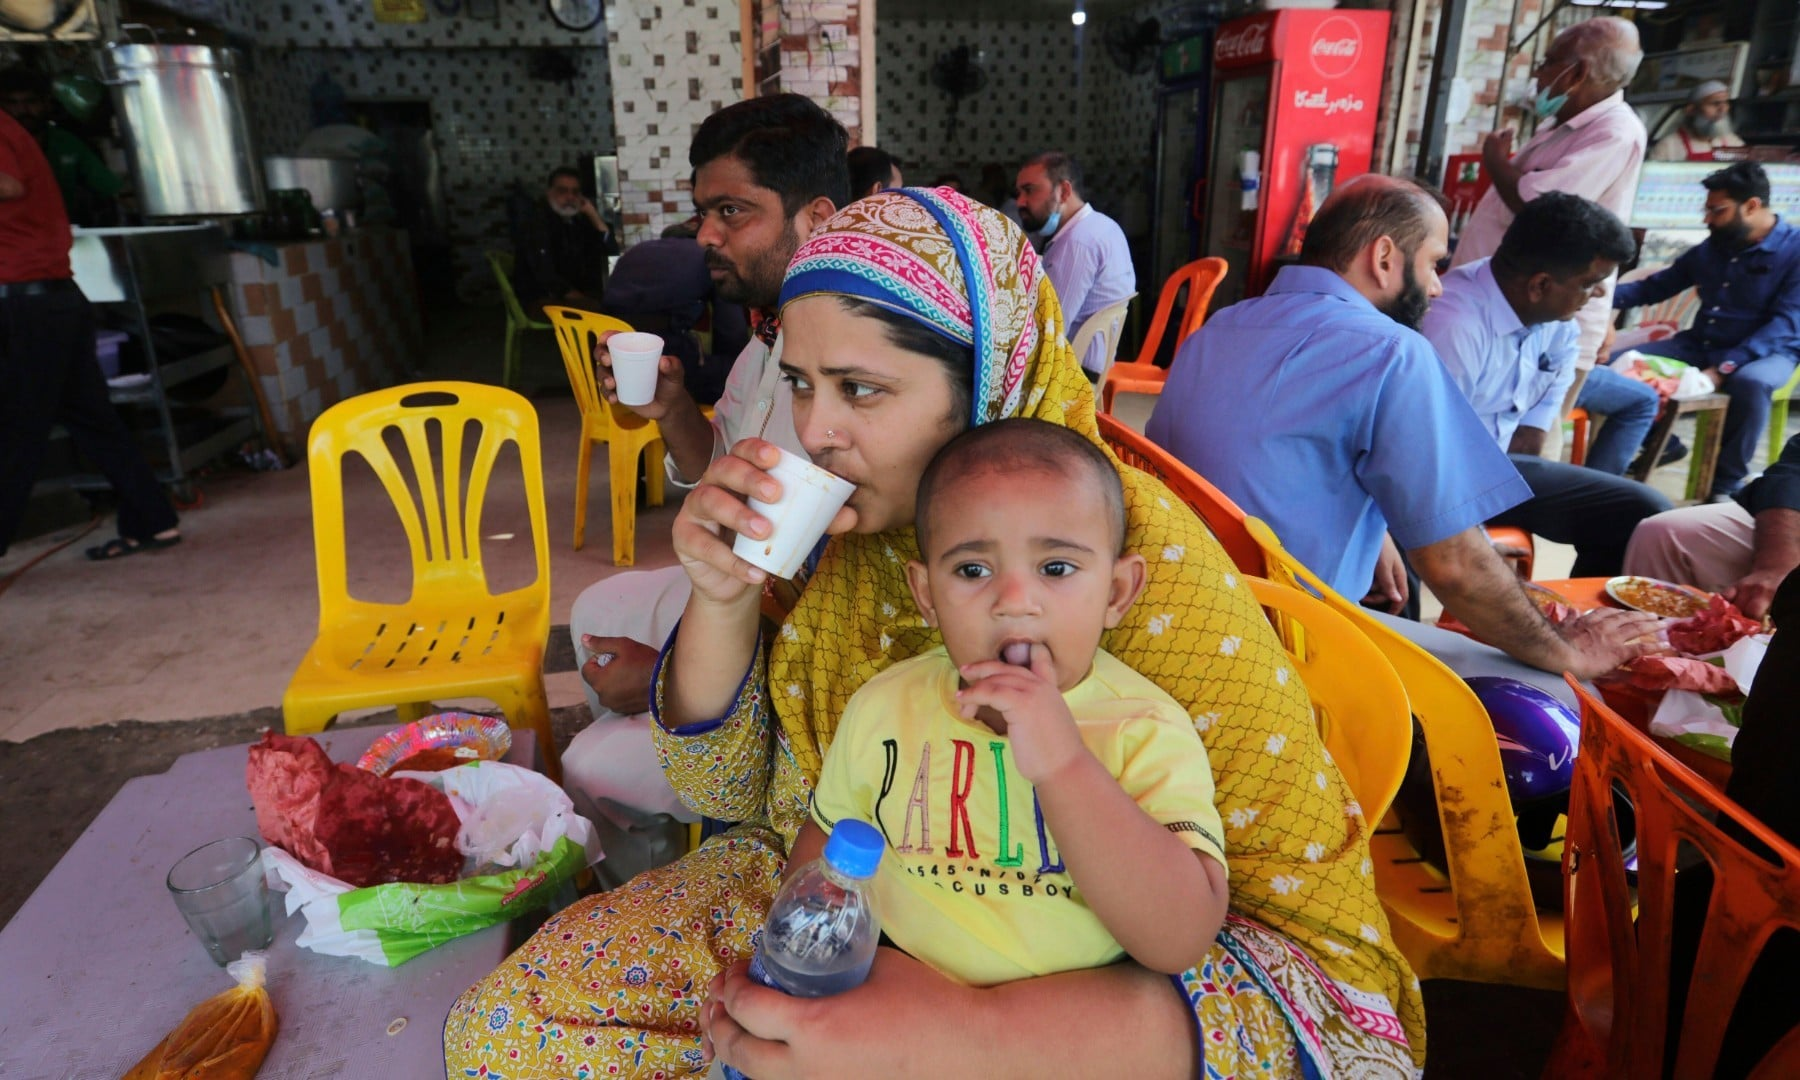 People eat at a restaurant following an ease in restrictions that had been imposed to help control the coronavirus in Karachi on August 10. — AP